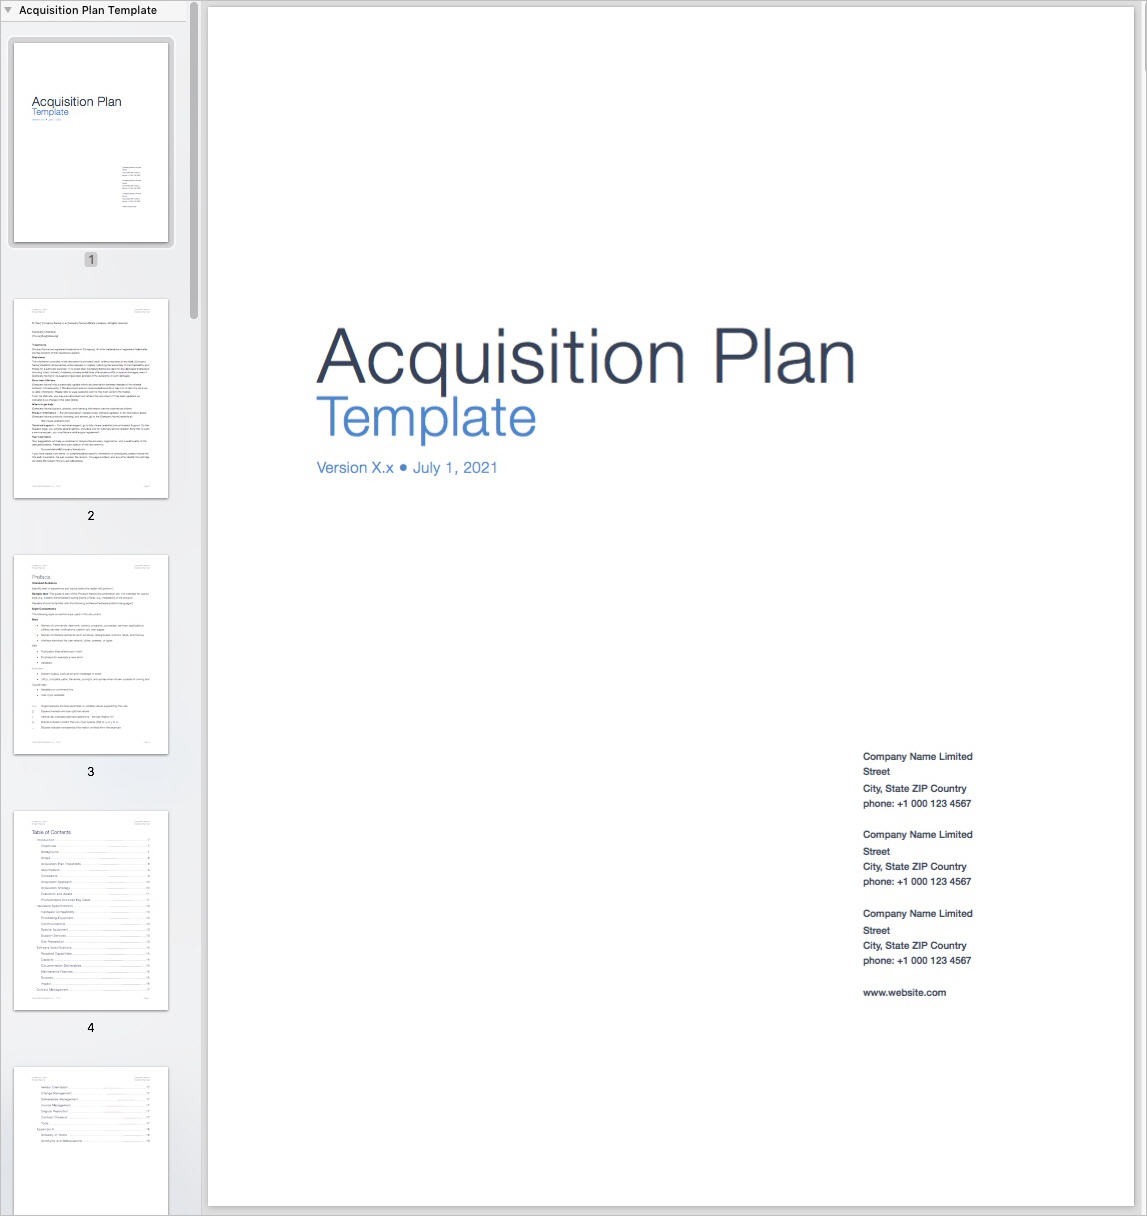 Acquisition_Plan_Template_Thumbnails